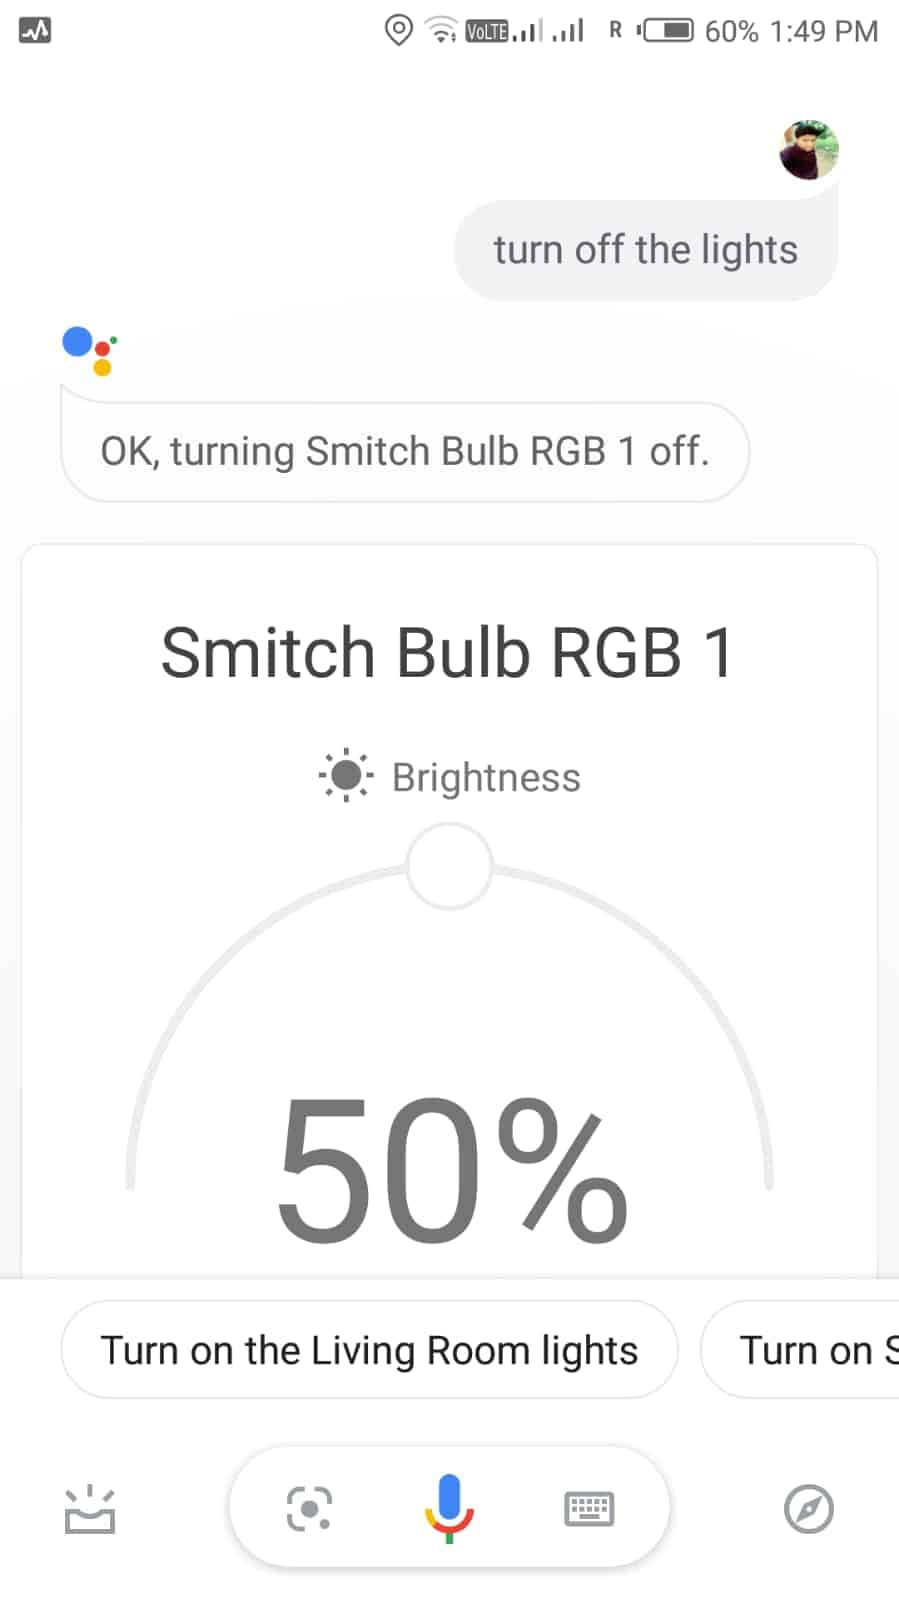 google assistant commands for smitch smart bulb